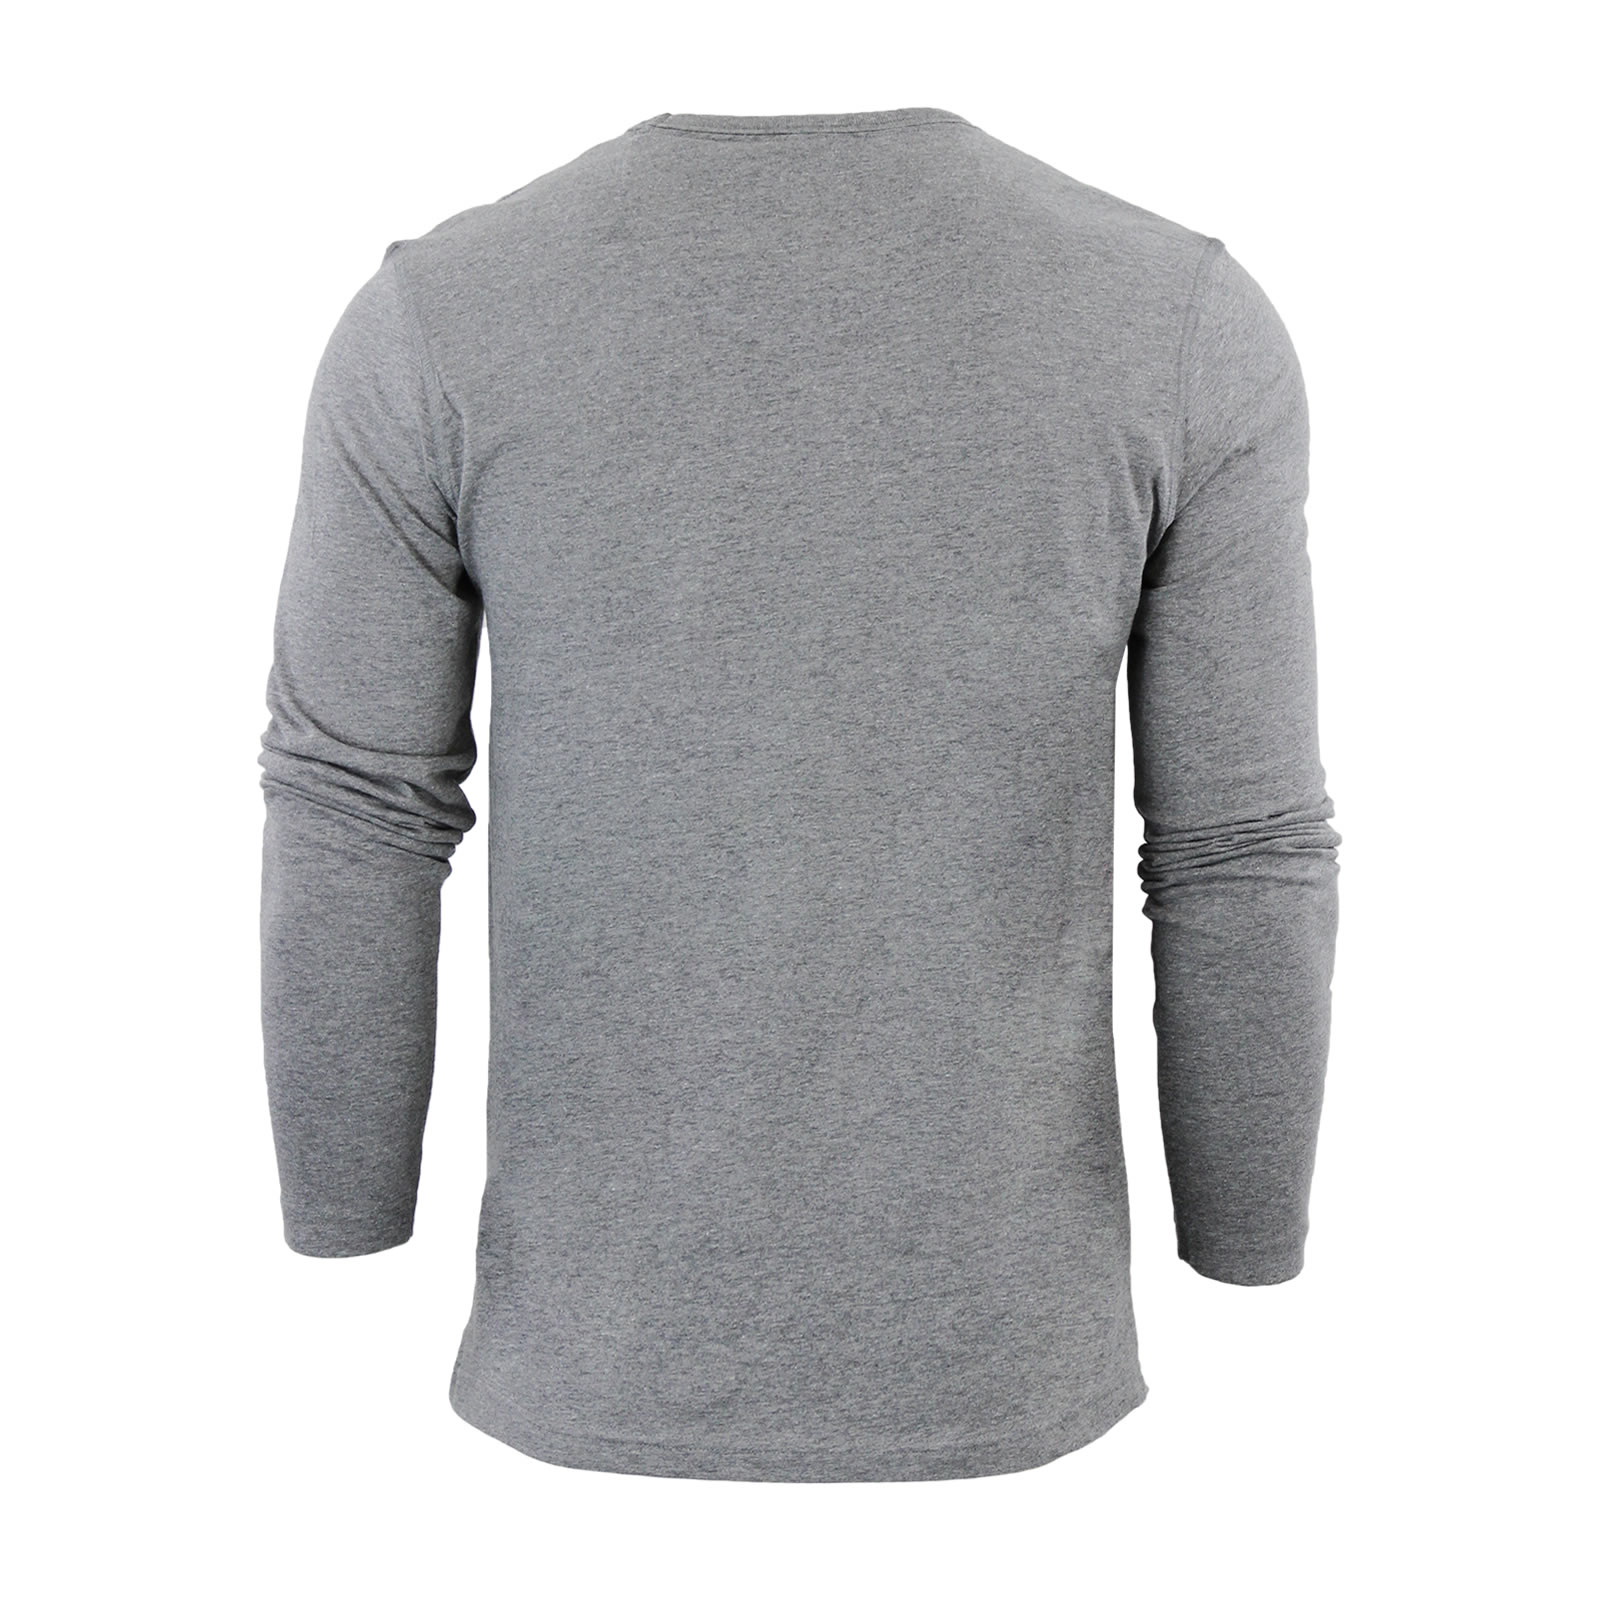 T-shirt-homme-par-brave-soul-prague-en-coton-a-encolure-ras-du-cou-a-manches-longues-top-casual miniature 12